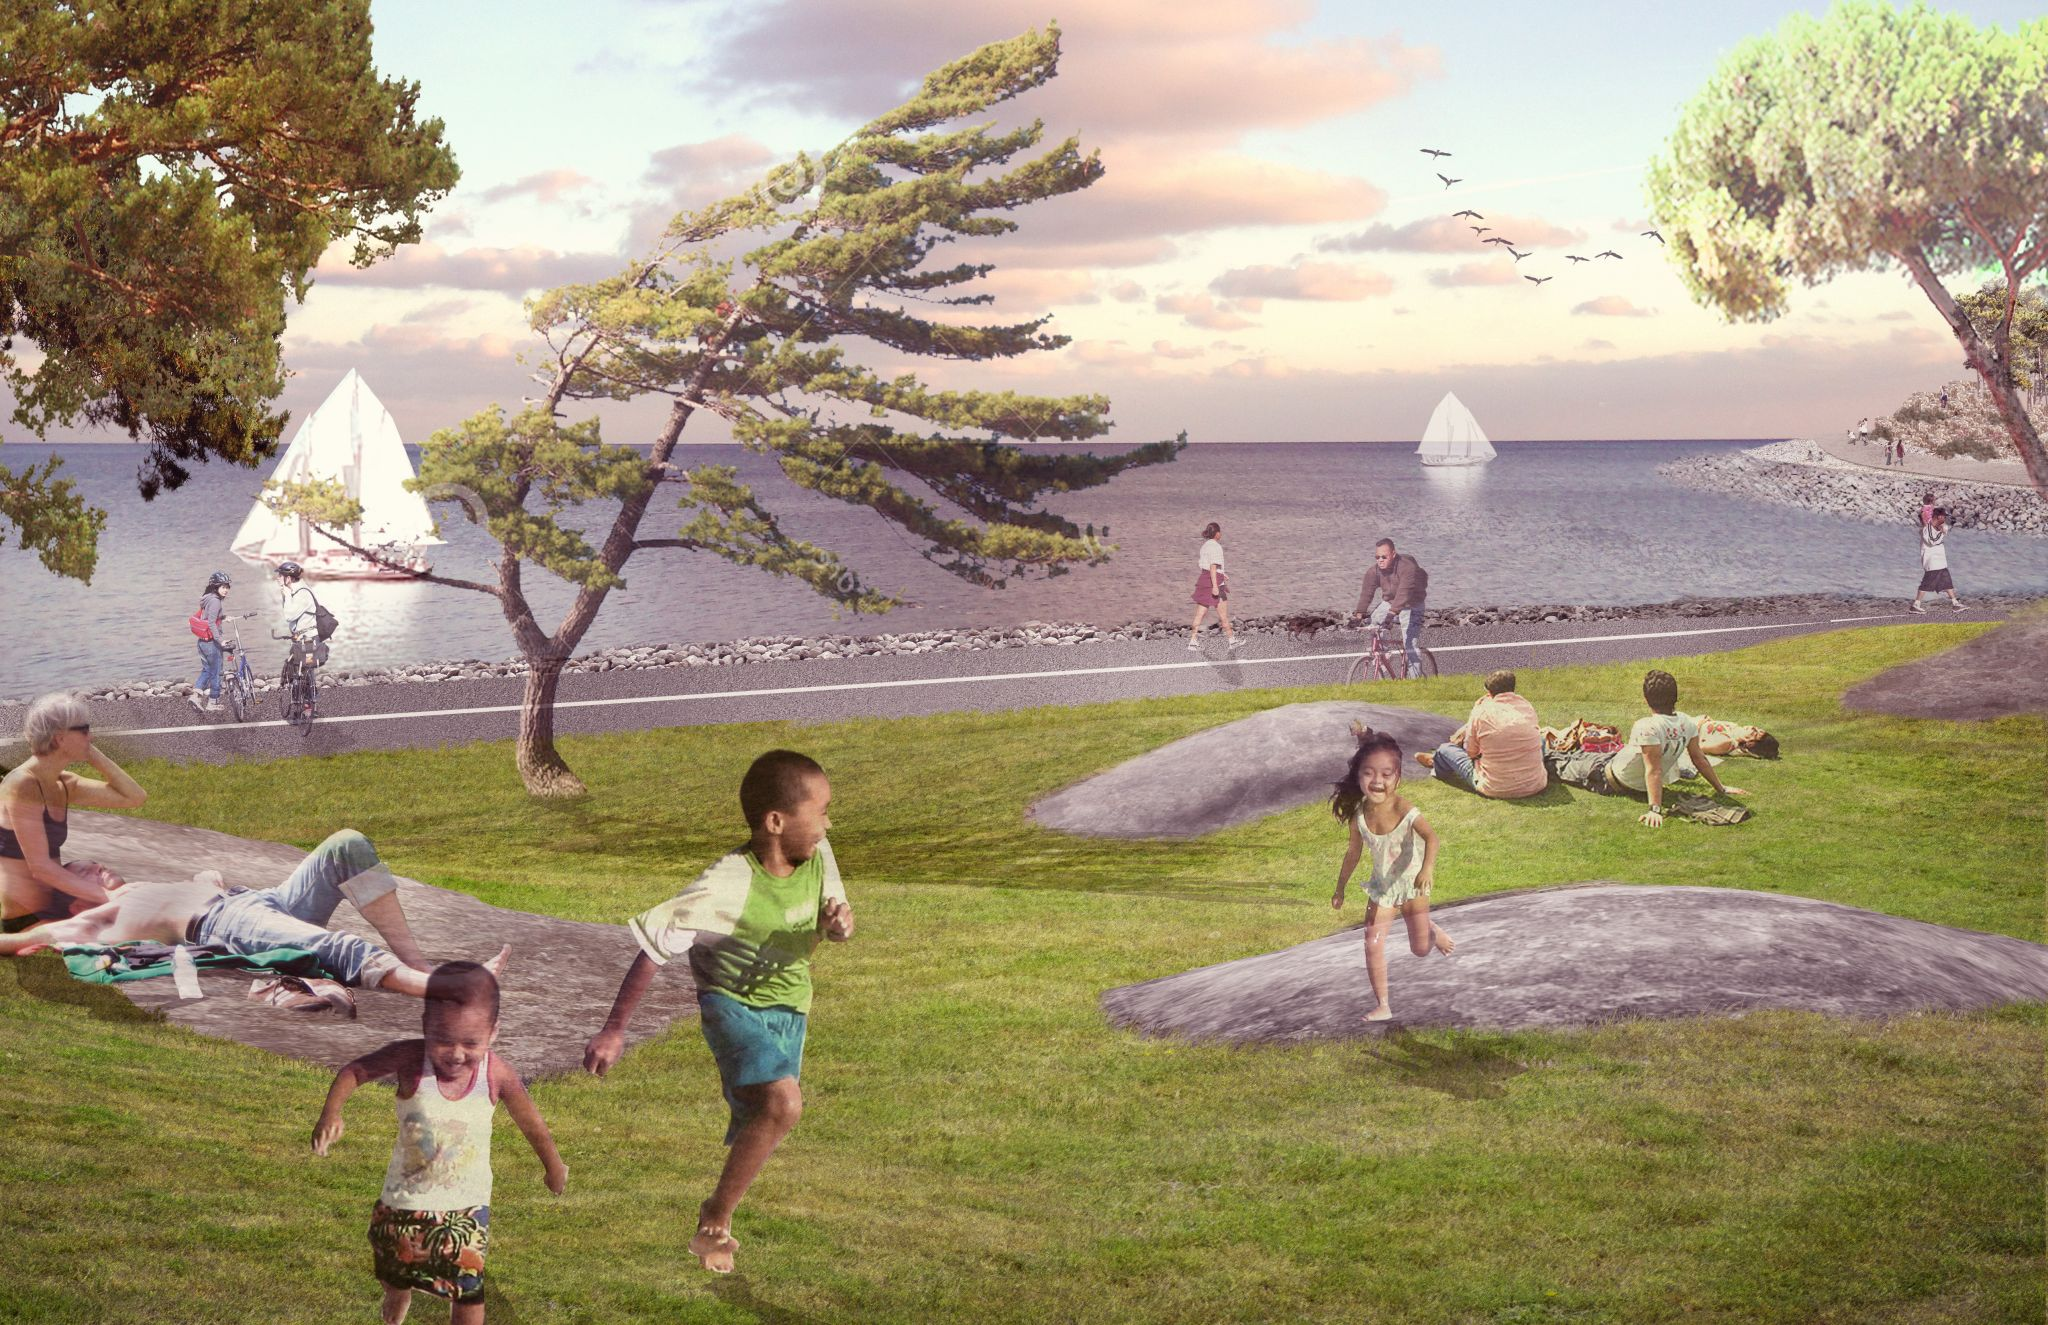 The Romantic Garden is part of the 3-ha (7.5-acre) East Island redevelopment project at Toronto's Ontario Place. Image courtesy Ontario Ministry or Tourism, Culture, and Sport